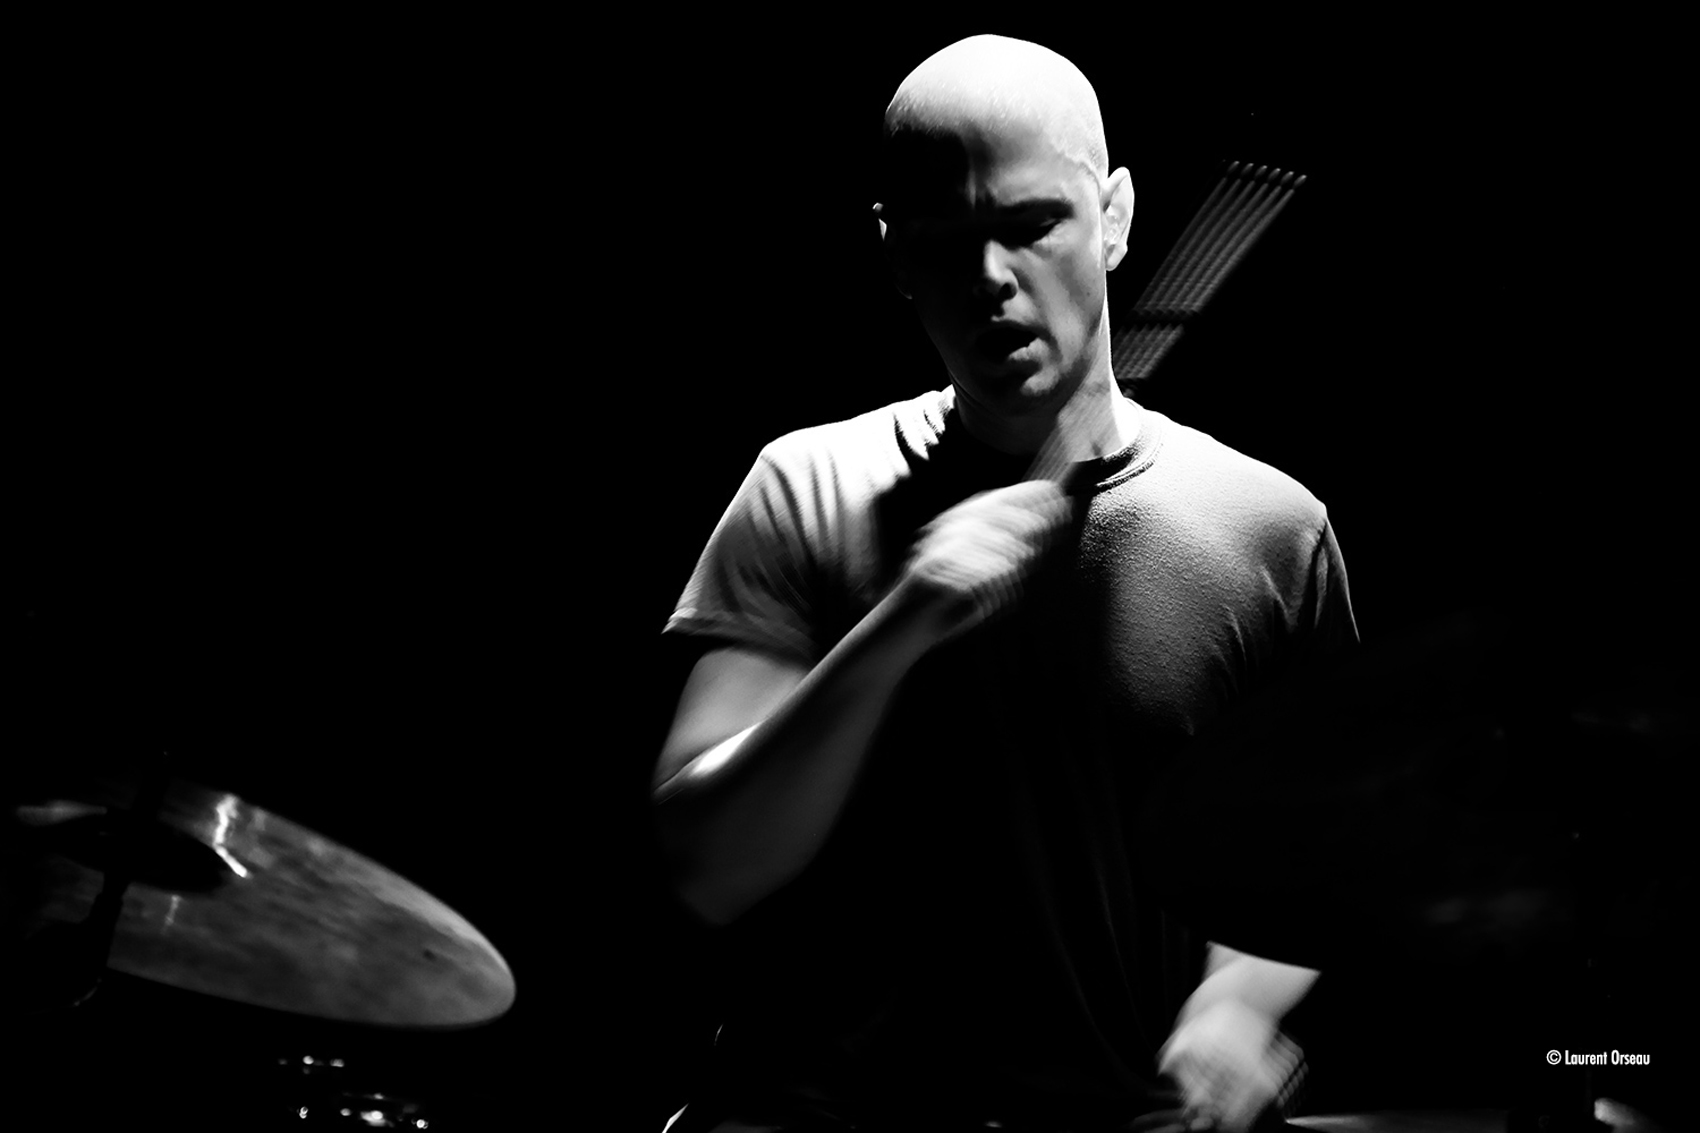 chris-corsano-Laurent_Orseau